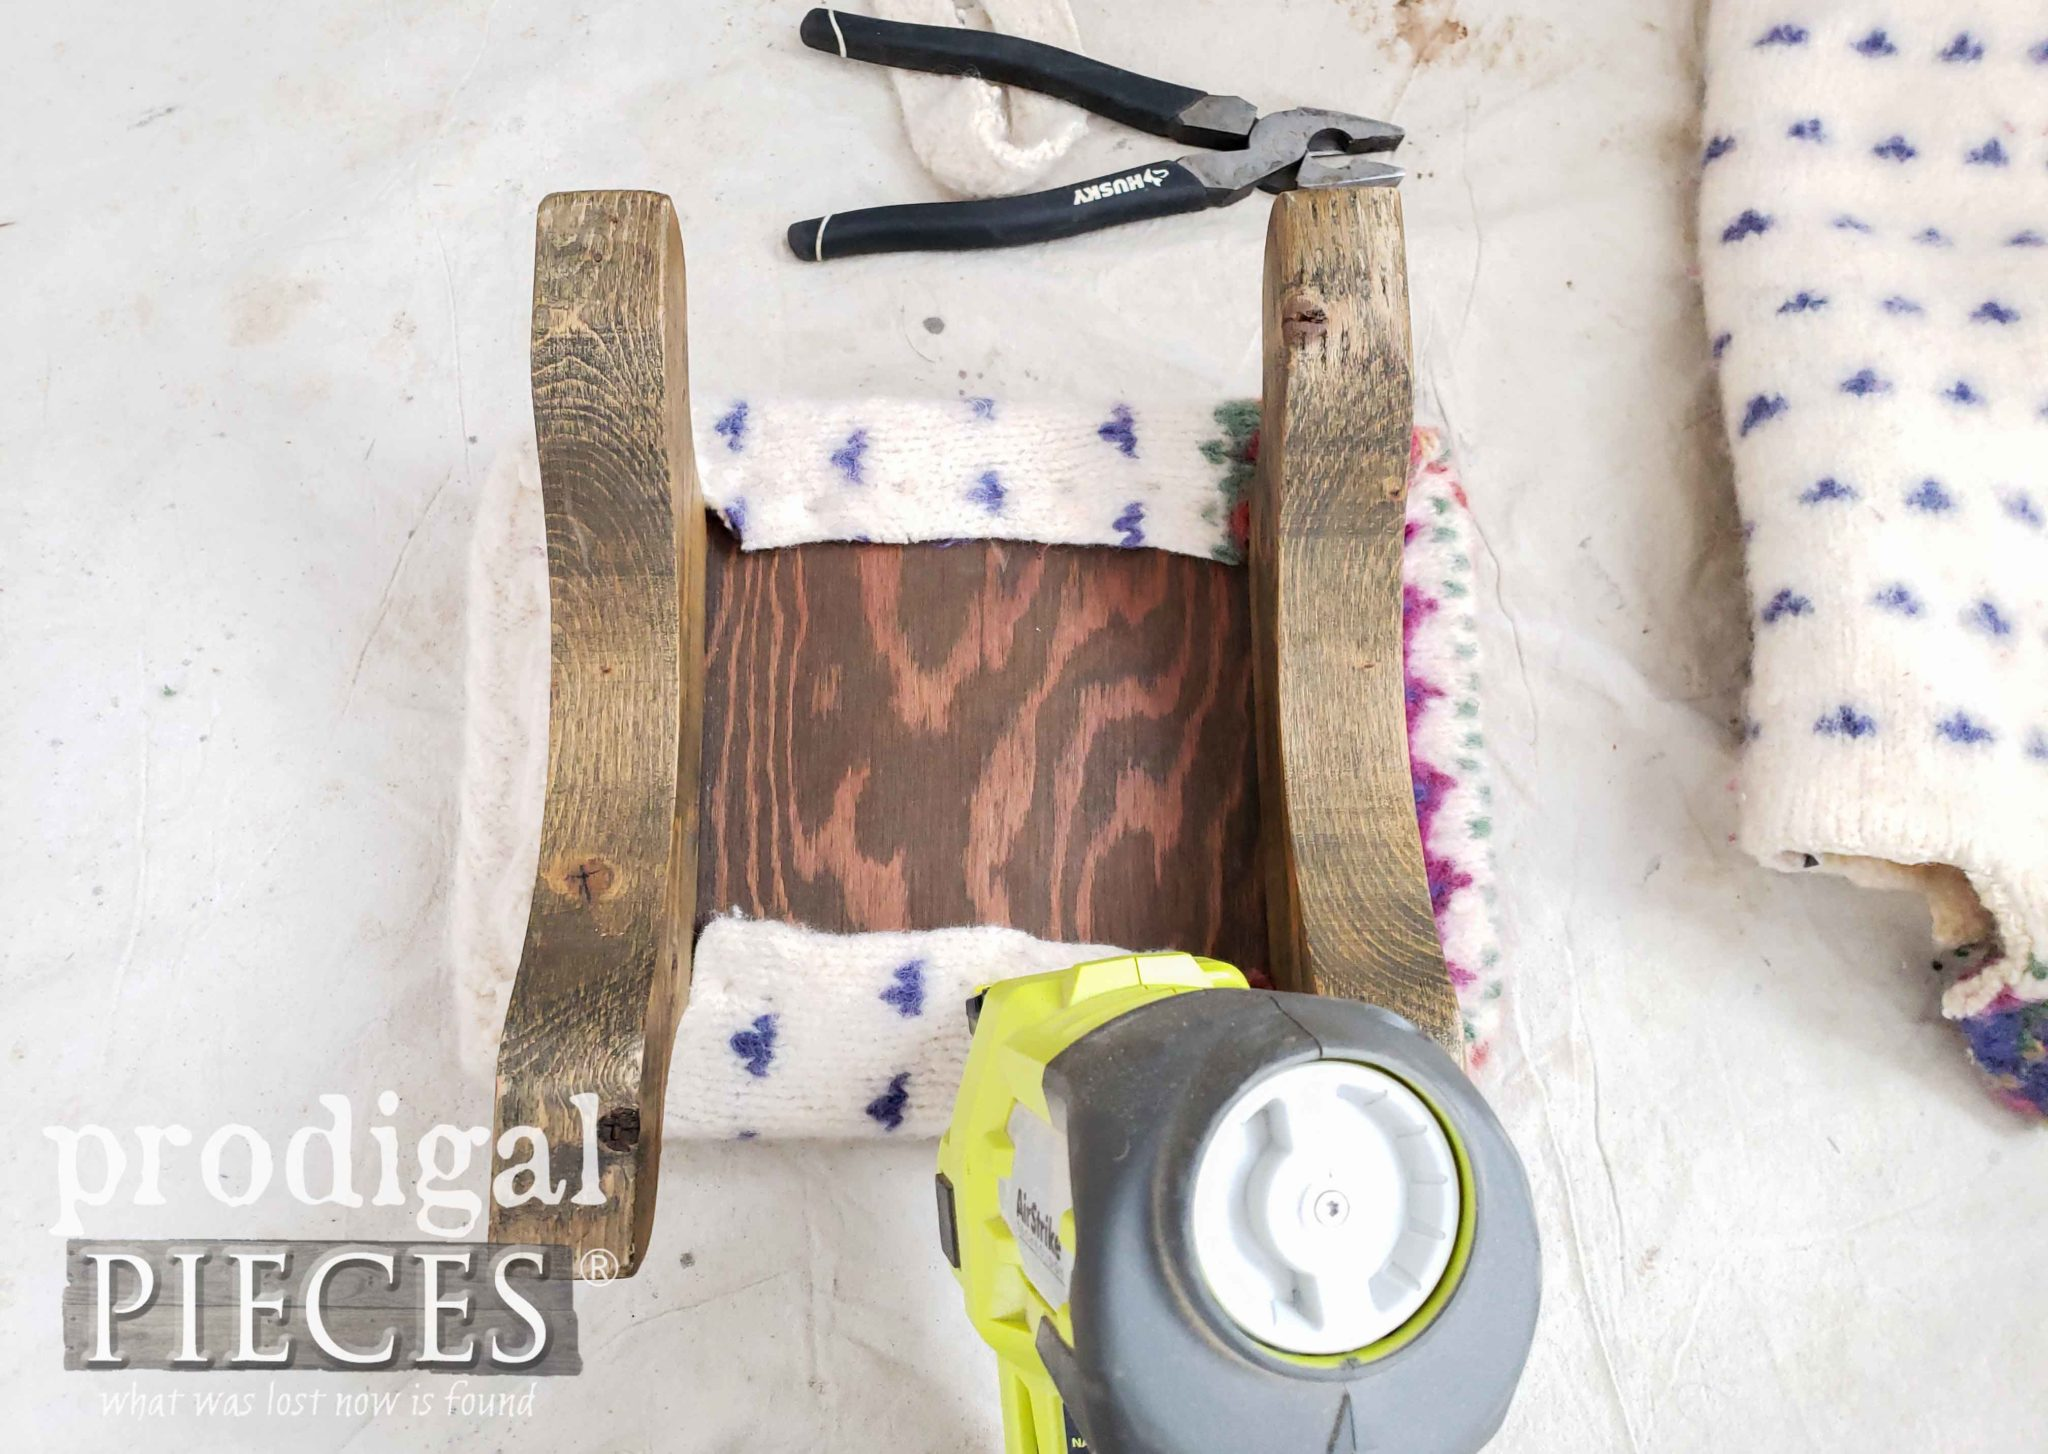 Stapling Felted Wool Upholstery to Footstool with Ryobi Stapler by Prodigal Pieces | prodigalpieces.com